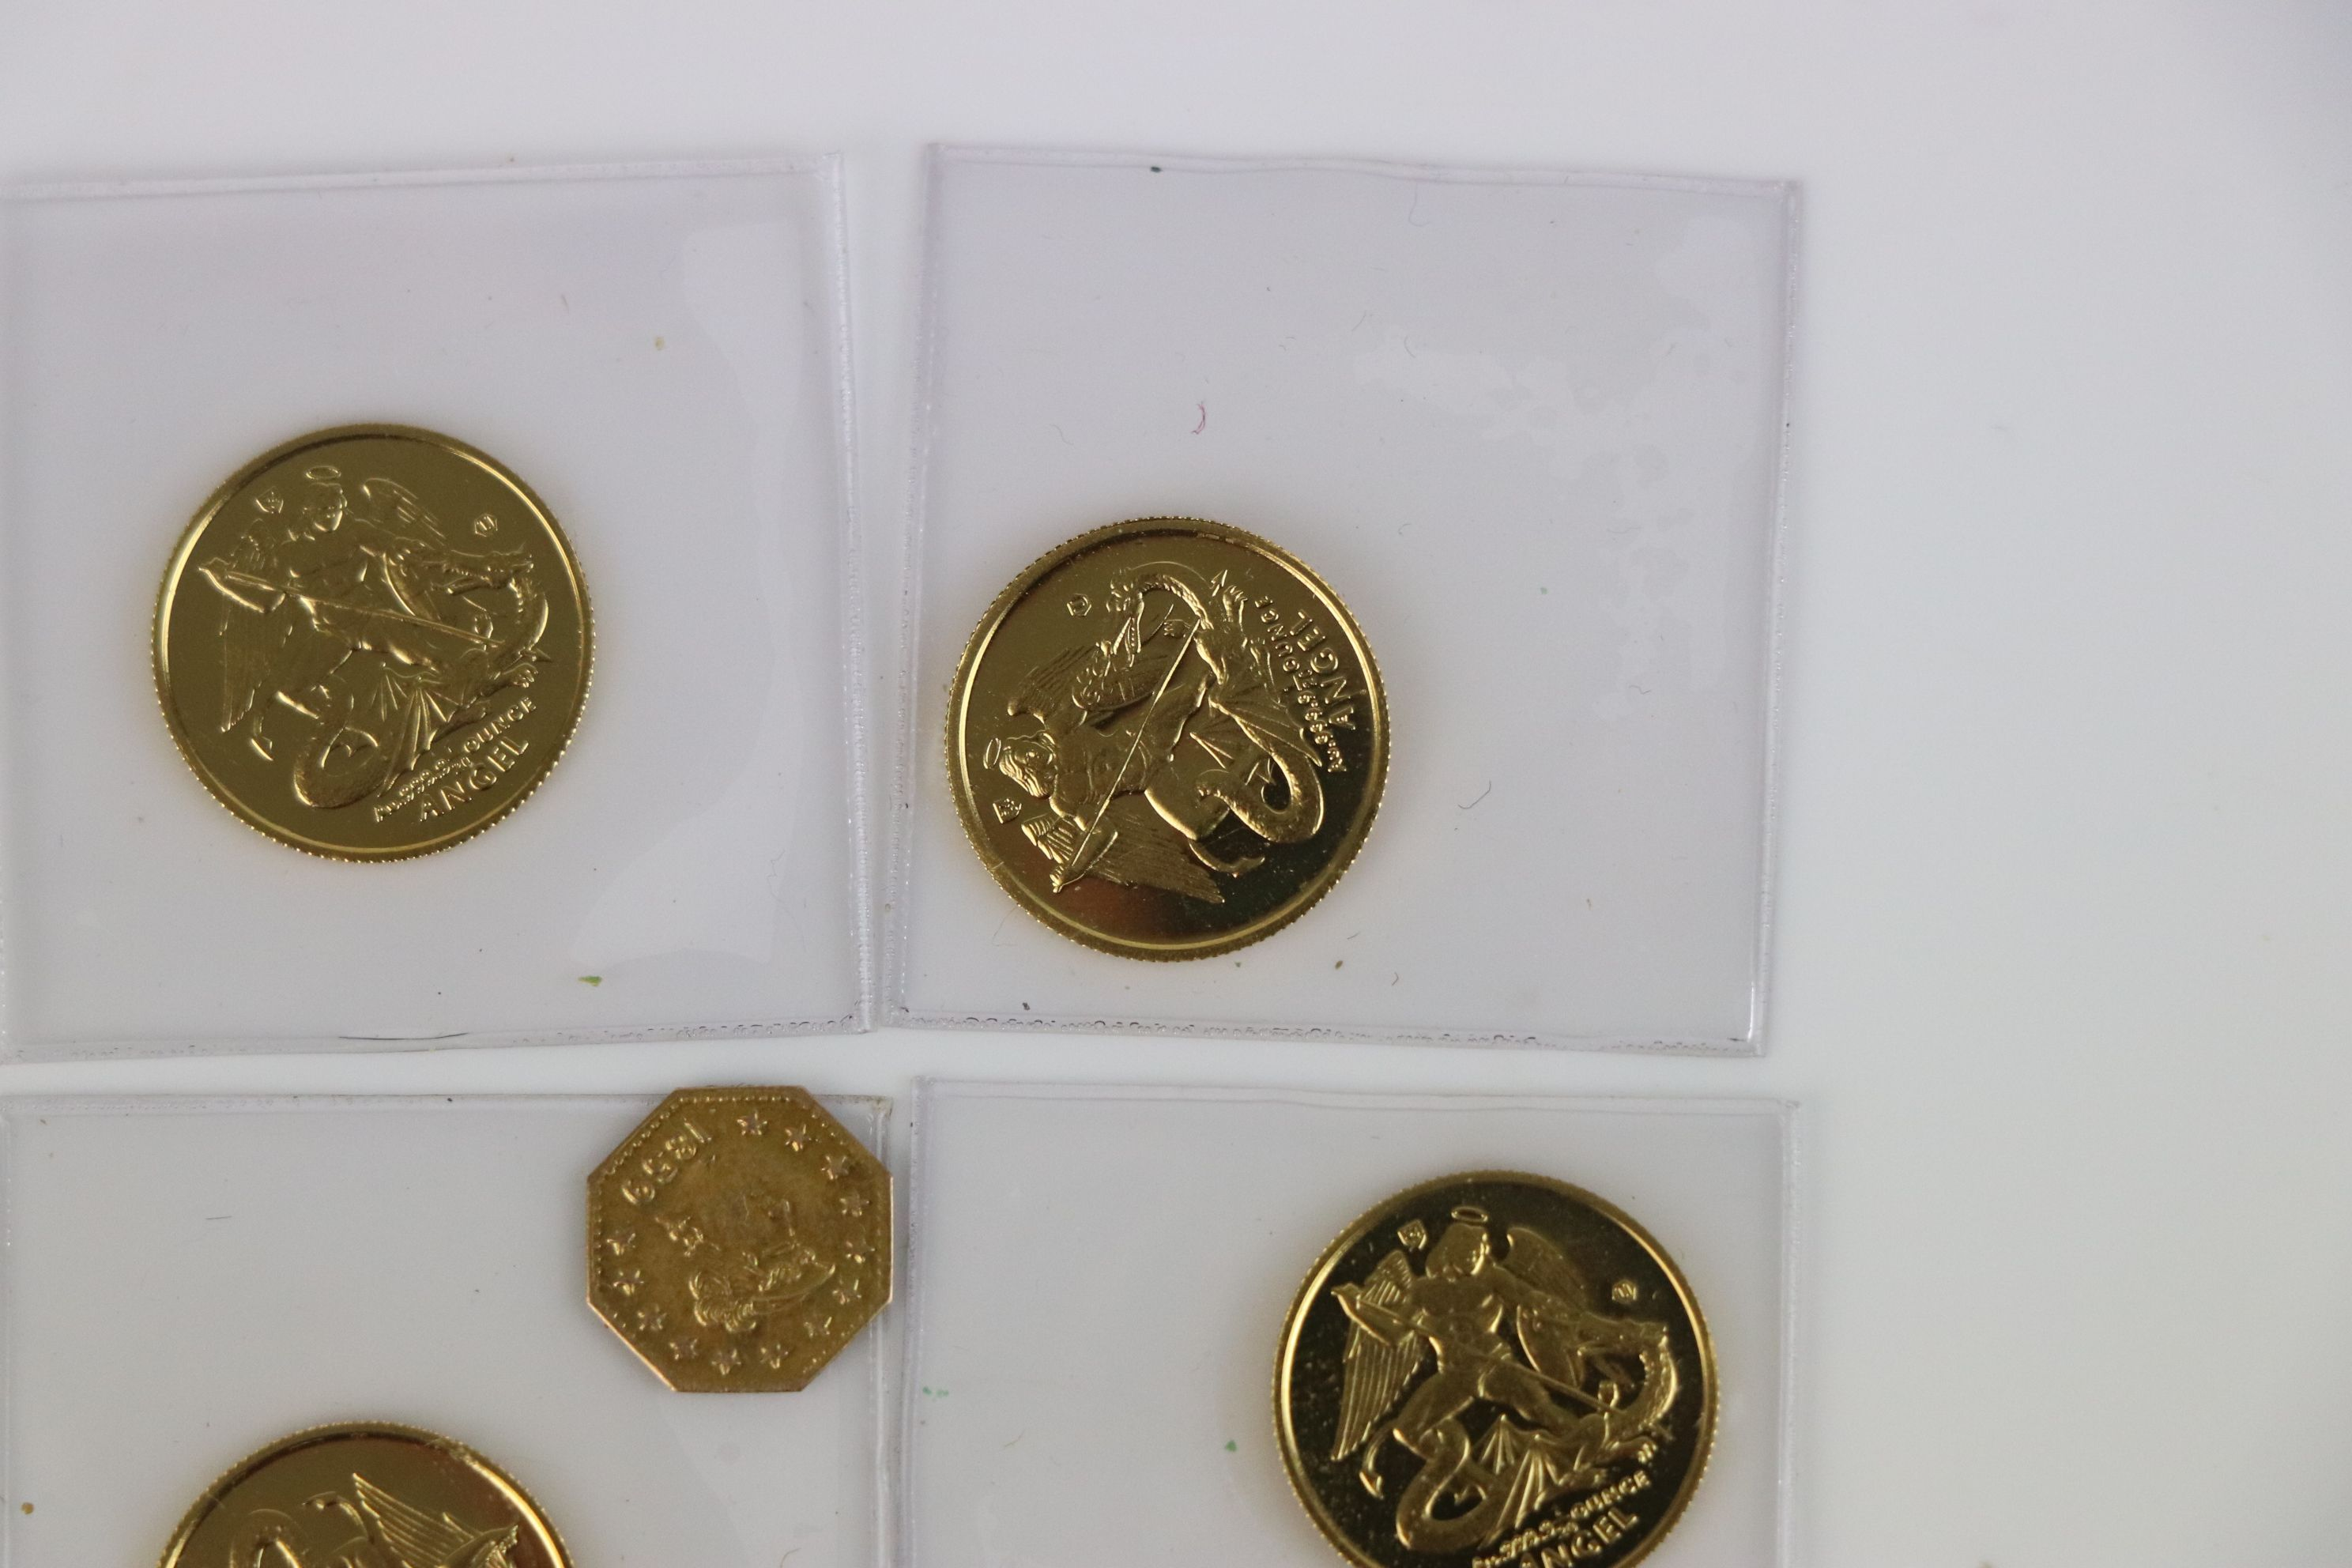 A small collection of British gold coins to include California gold rush 1/4 dollar and an Isle of - Image 3 of 6